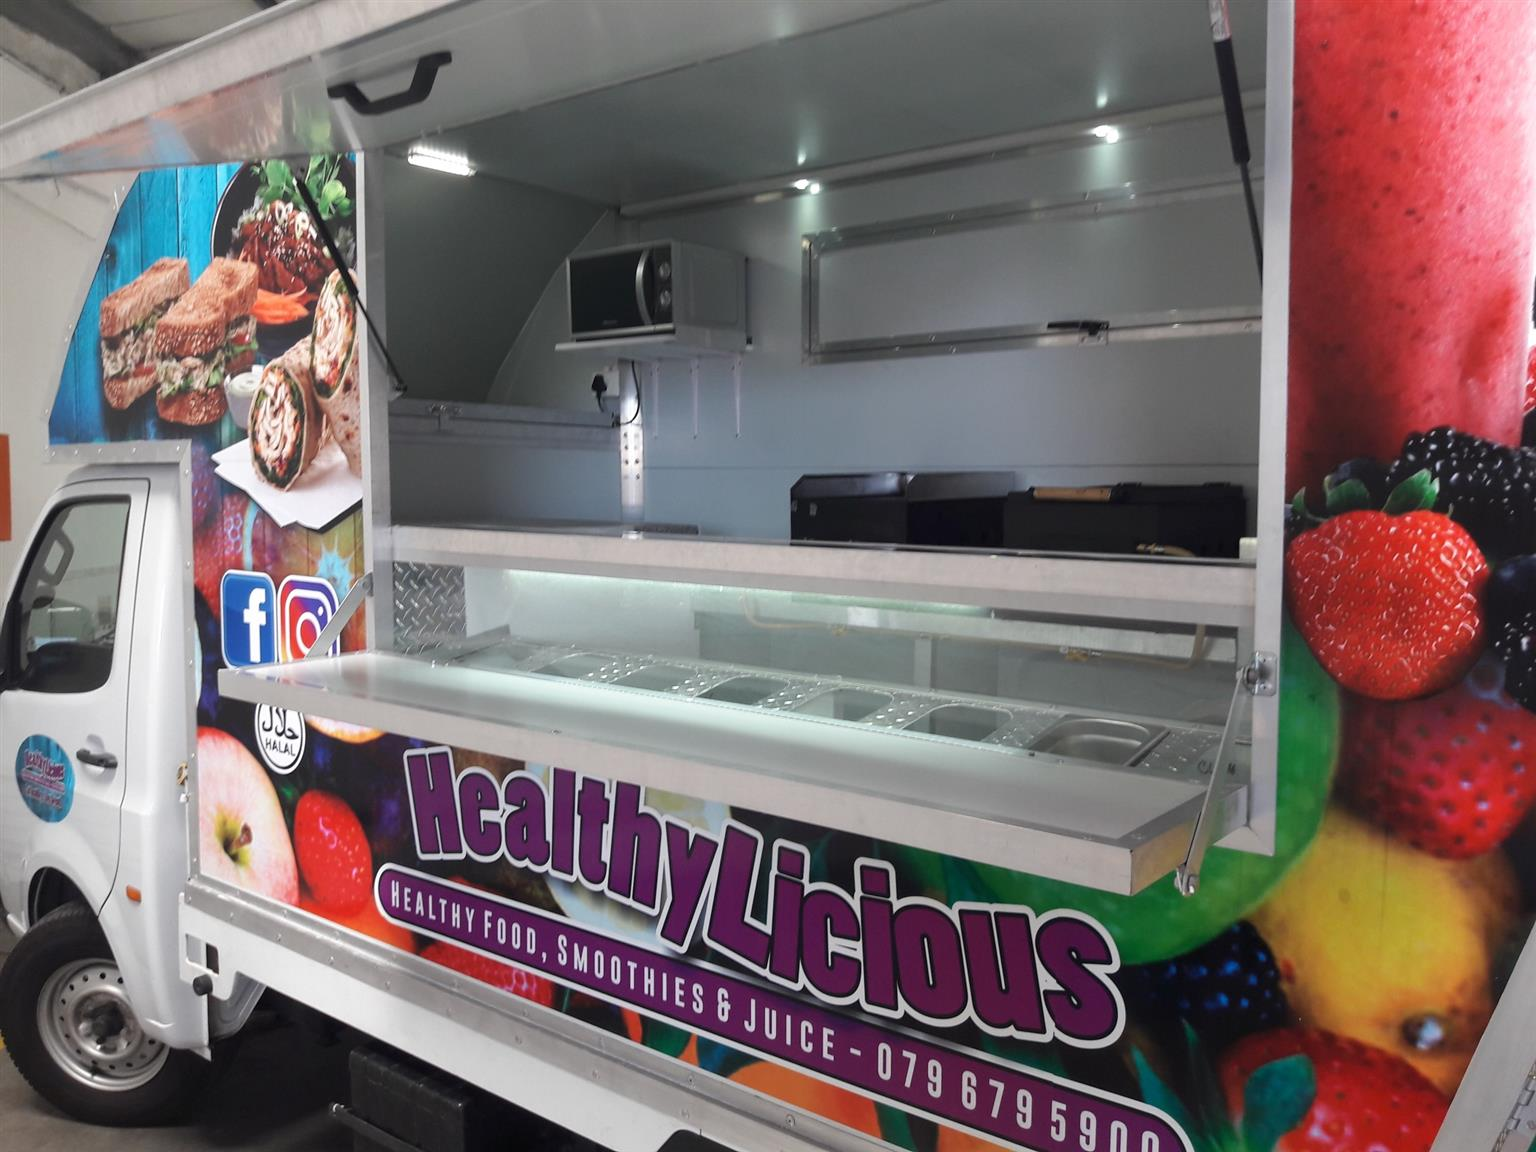 Food Trucks For Sale ! Dream It. Wish it. Do it! - Your Own Business! Be a Legend !